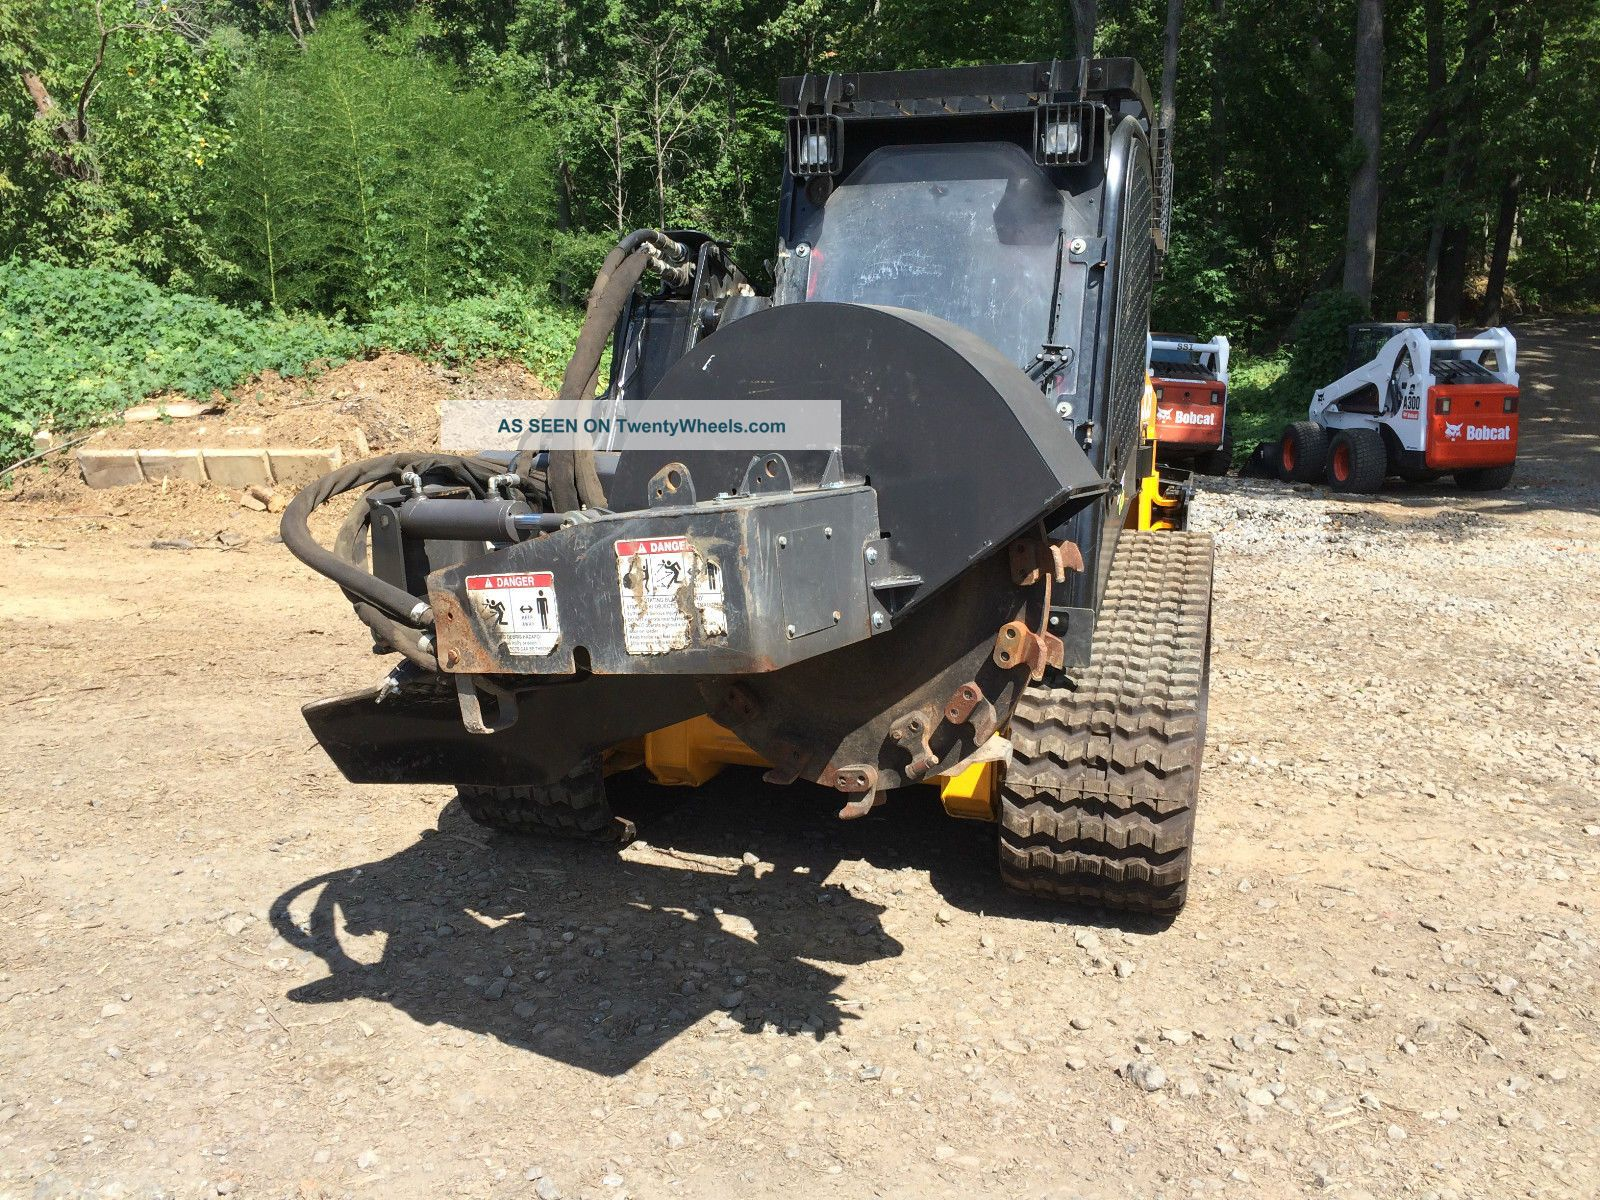 Bradco Sg60 Stump Grinder Attachment For High - Flow Skid Steer Wood Chippers & Stump Grinders photo